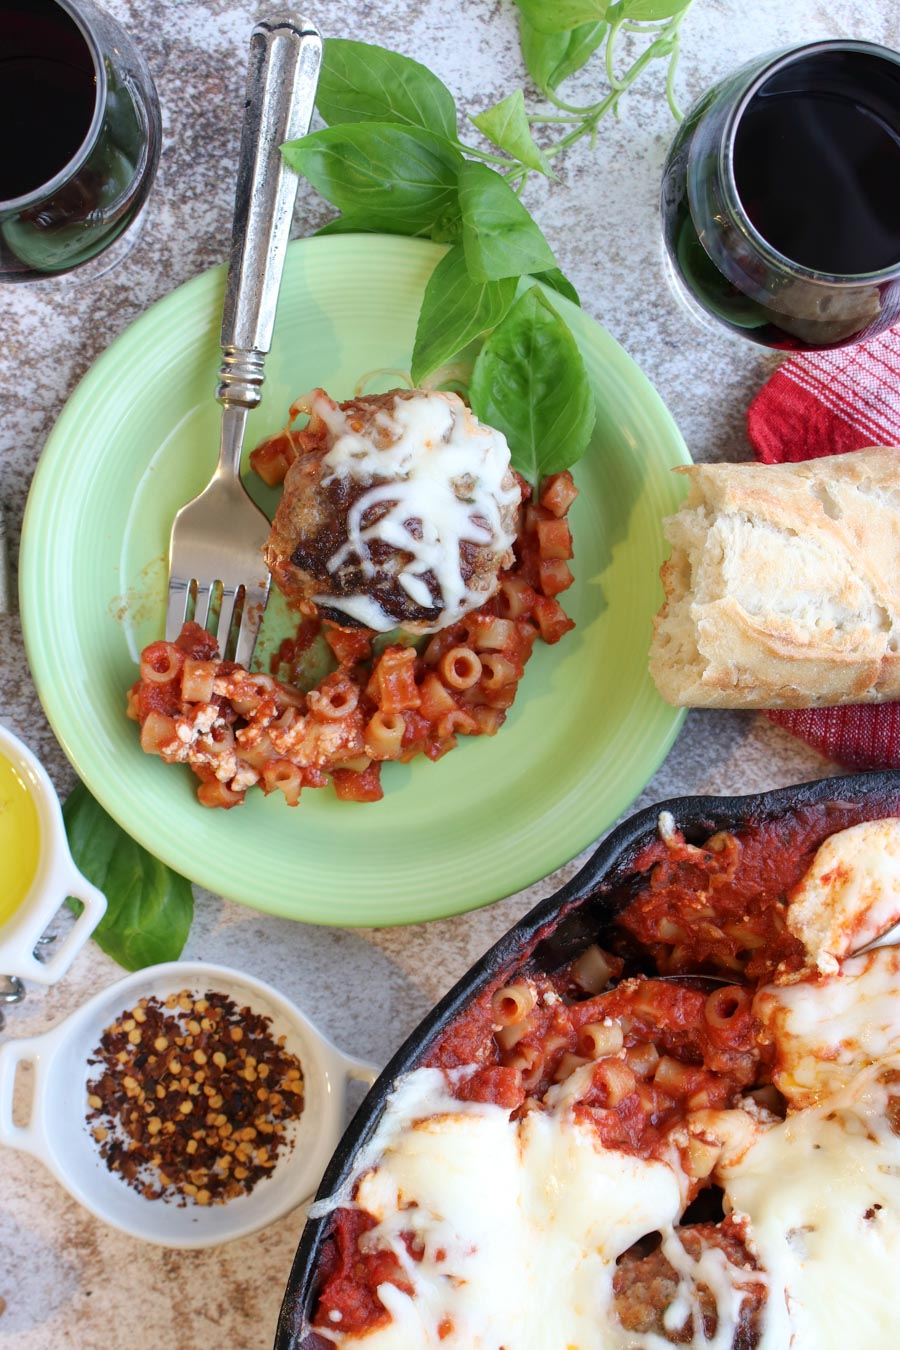 green plate with a meatballs, pasta, bread, and wine